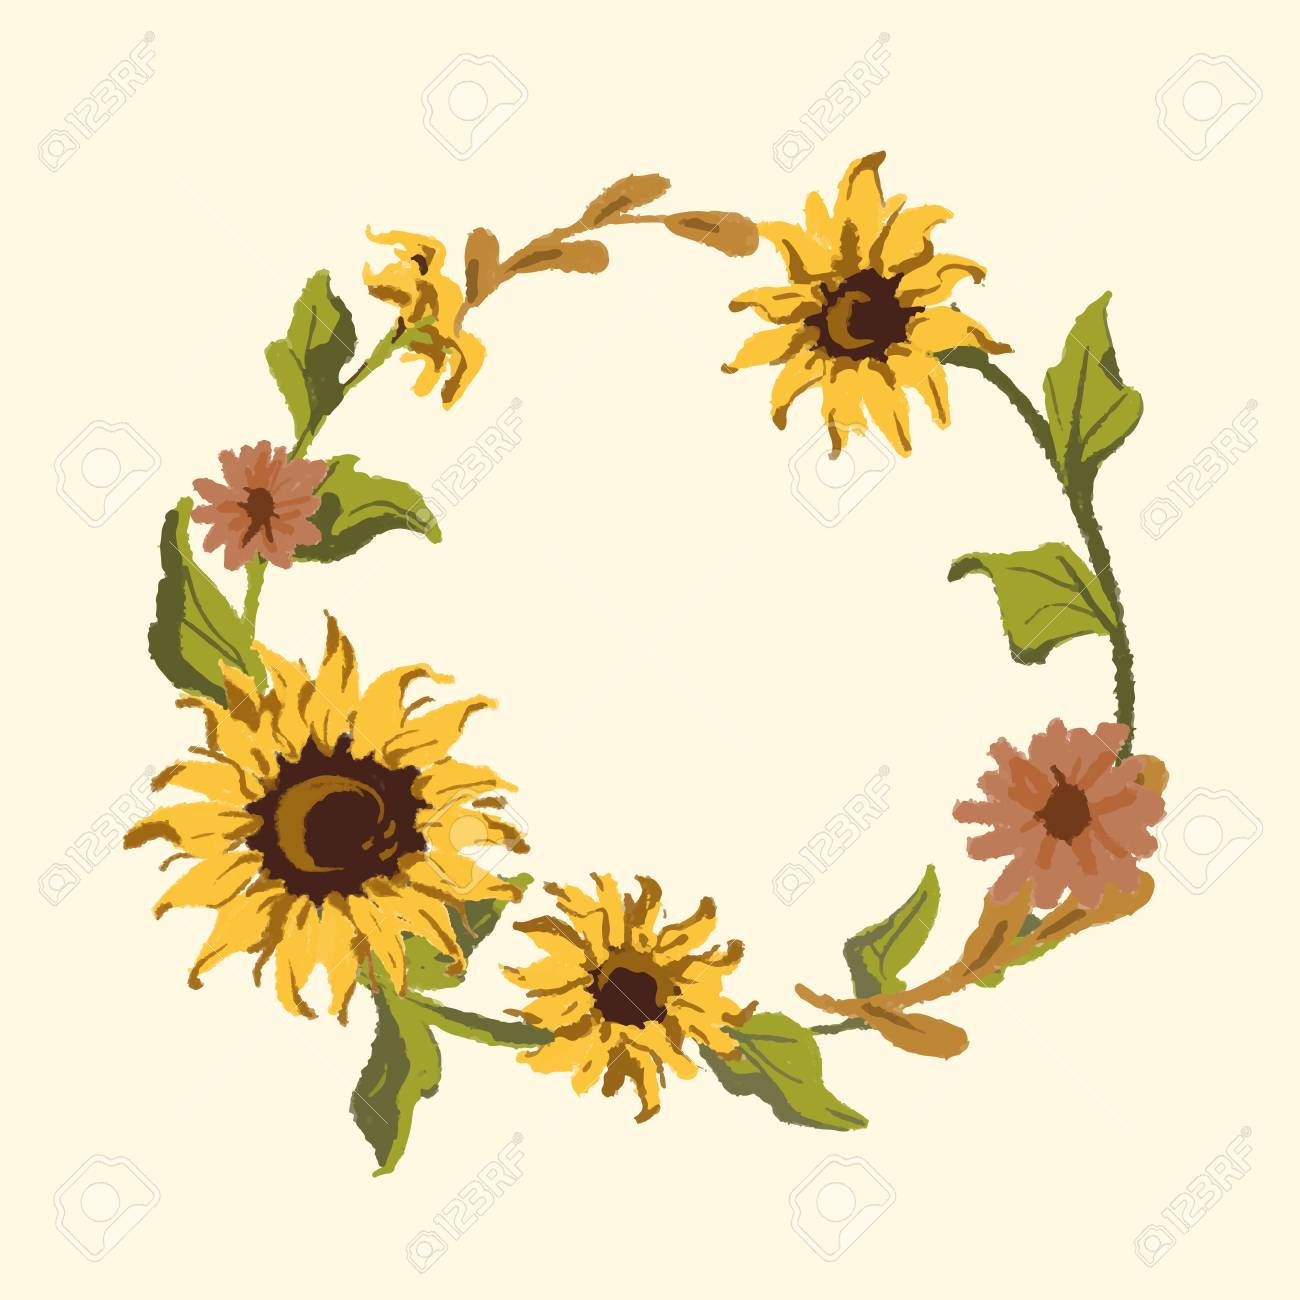 Round Sunflower Wreath Frame Vector Royalty Free Cliparts Vectors And Stock Illustration Image 122628550